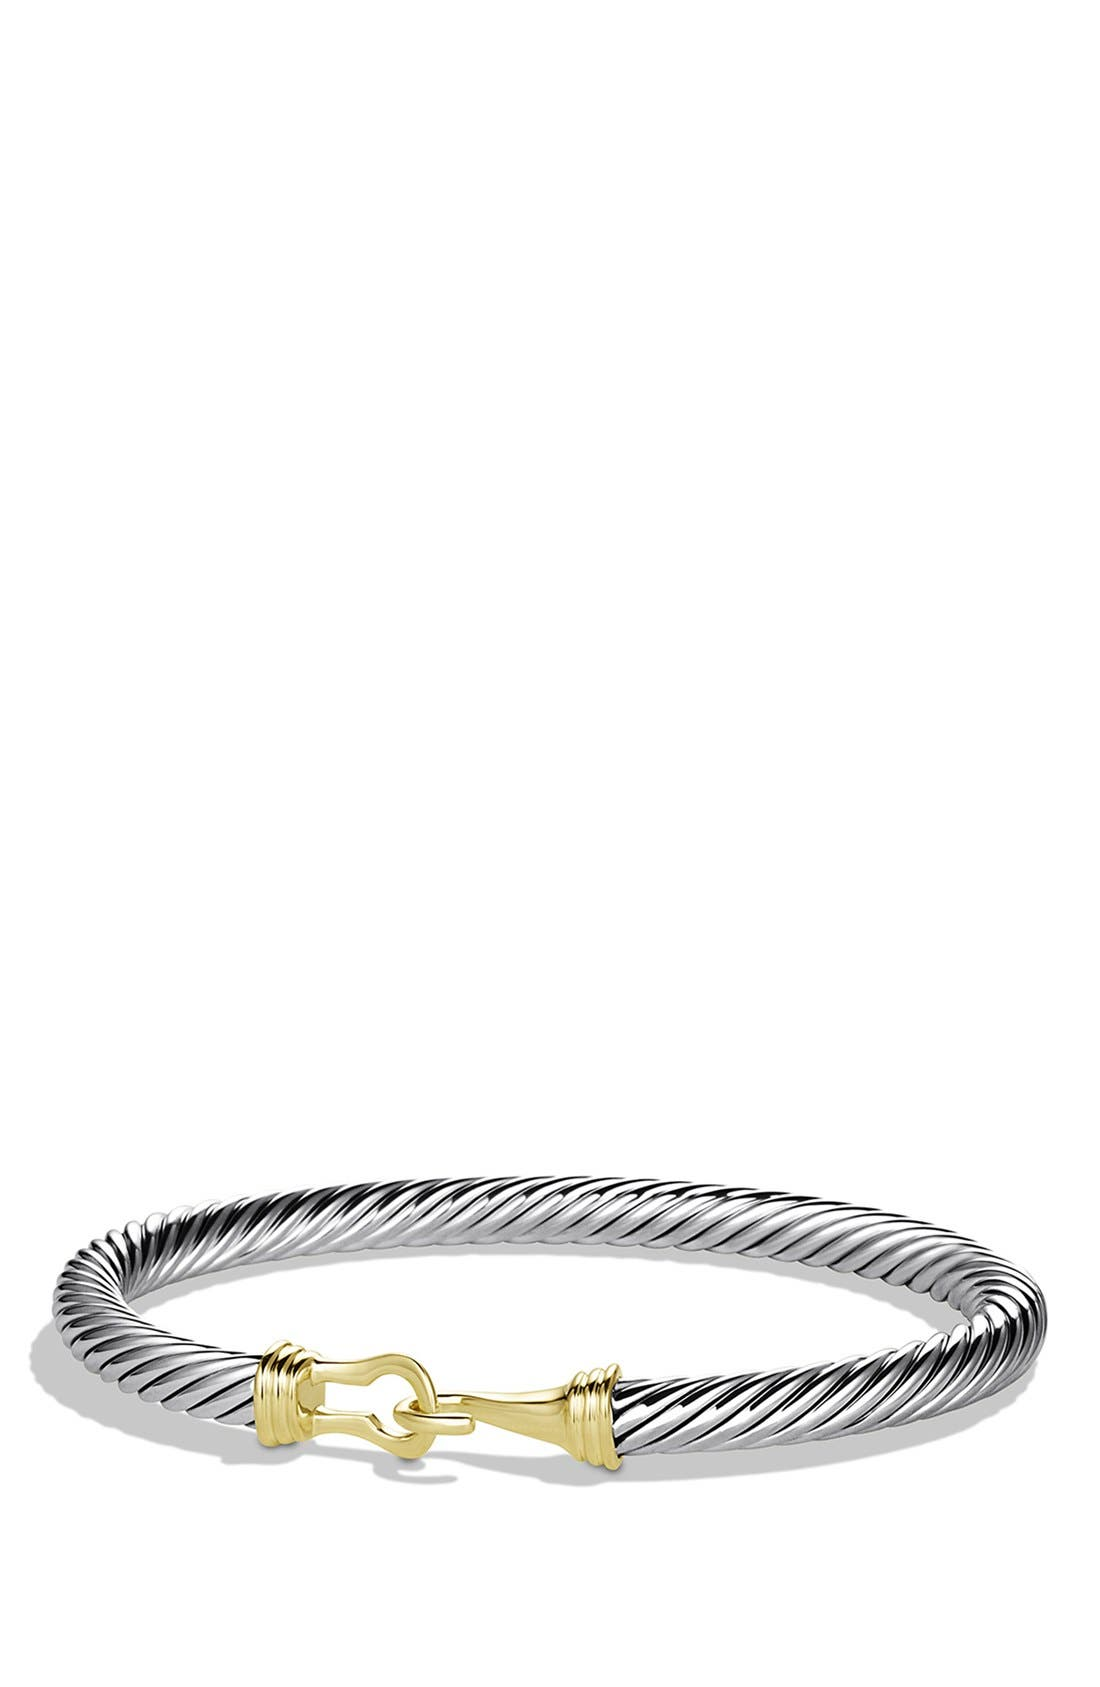 'Cable Buckle' Bracelet with Gold,                         Main,                         color, Two Tone